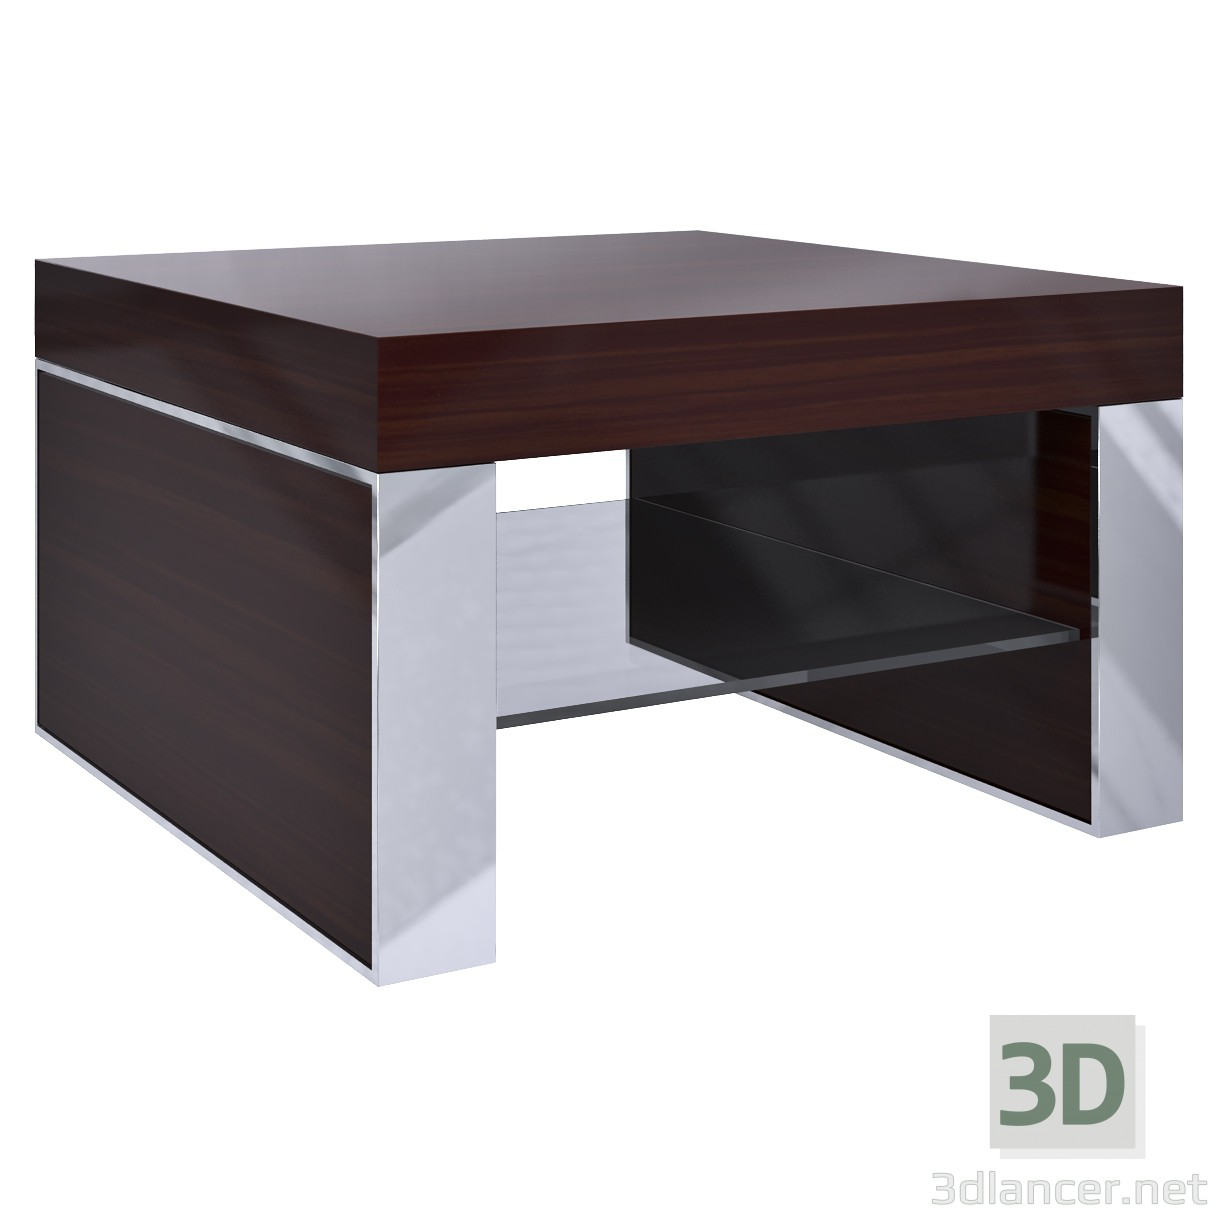 Mod le 3d table basse pusha exclusif t l charger - Modele table basse ...